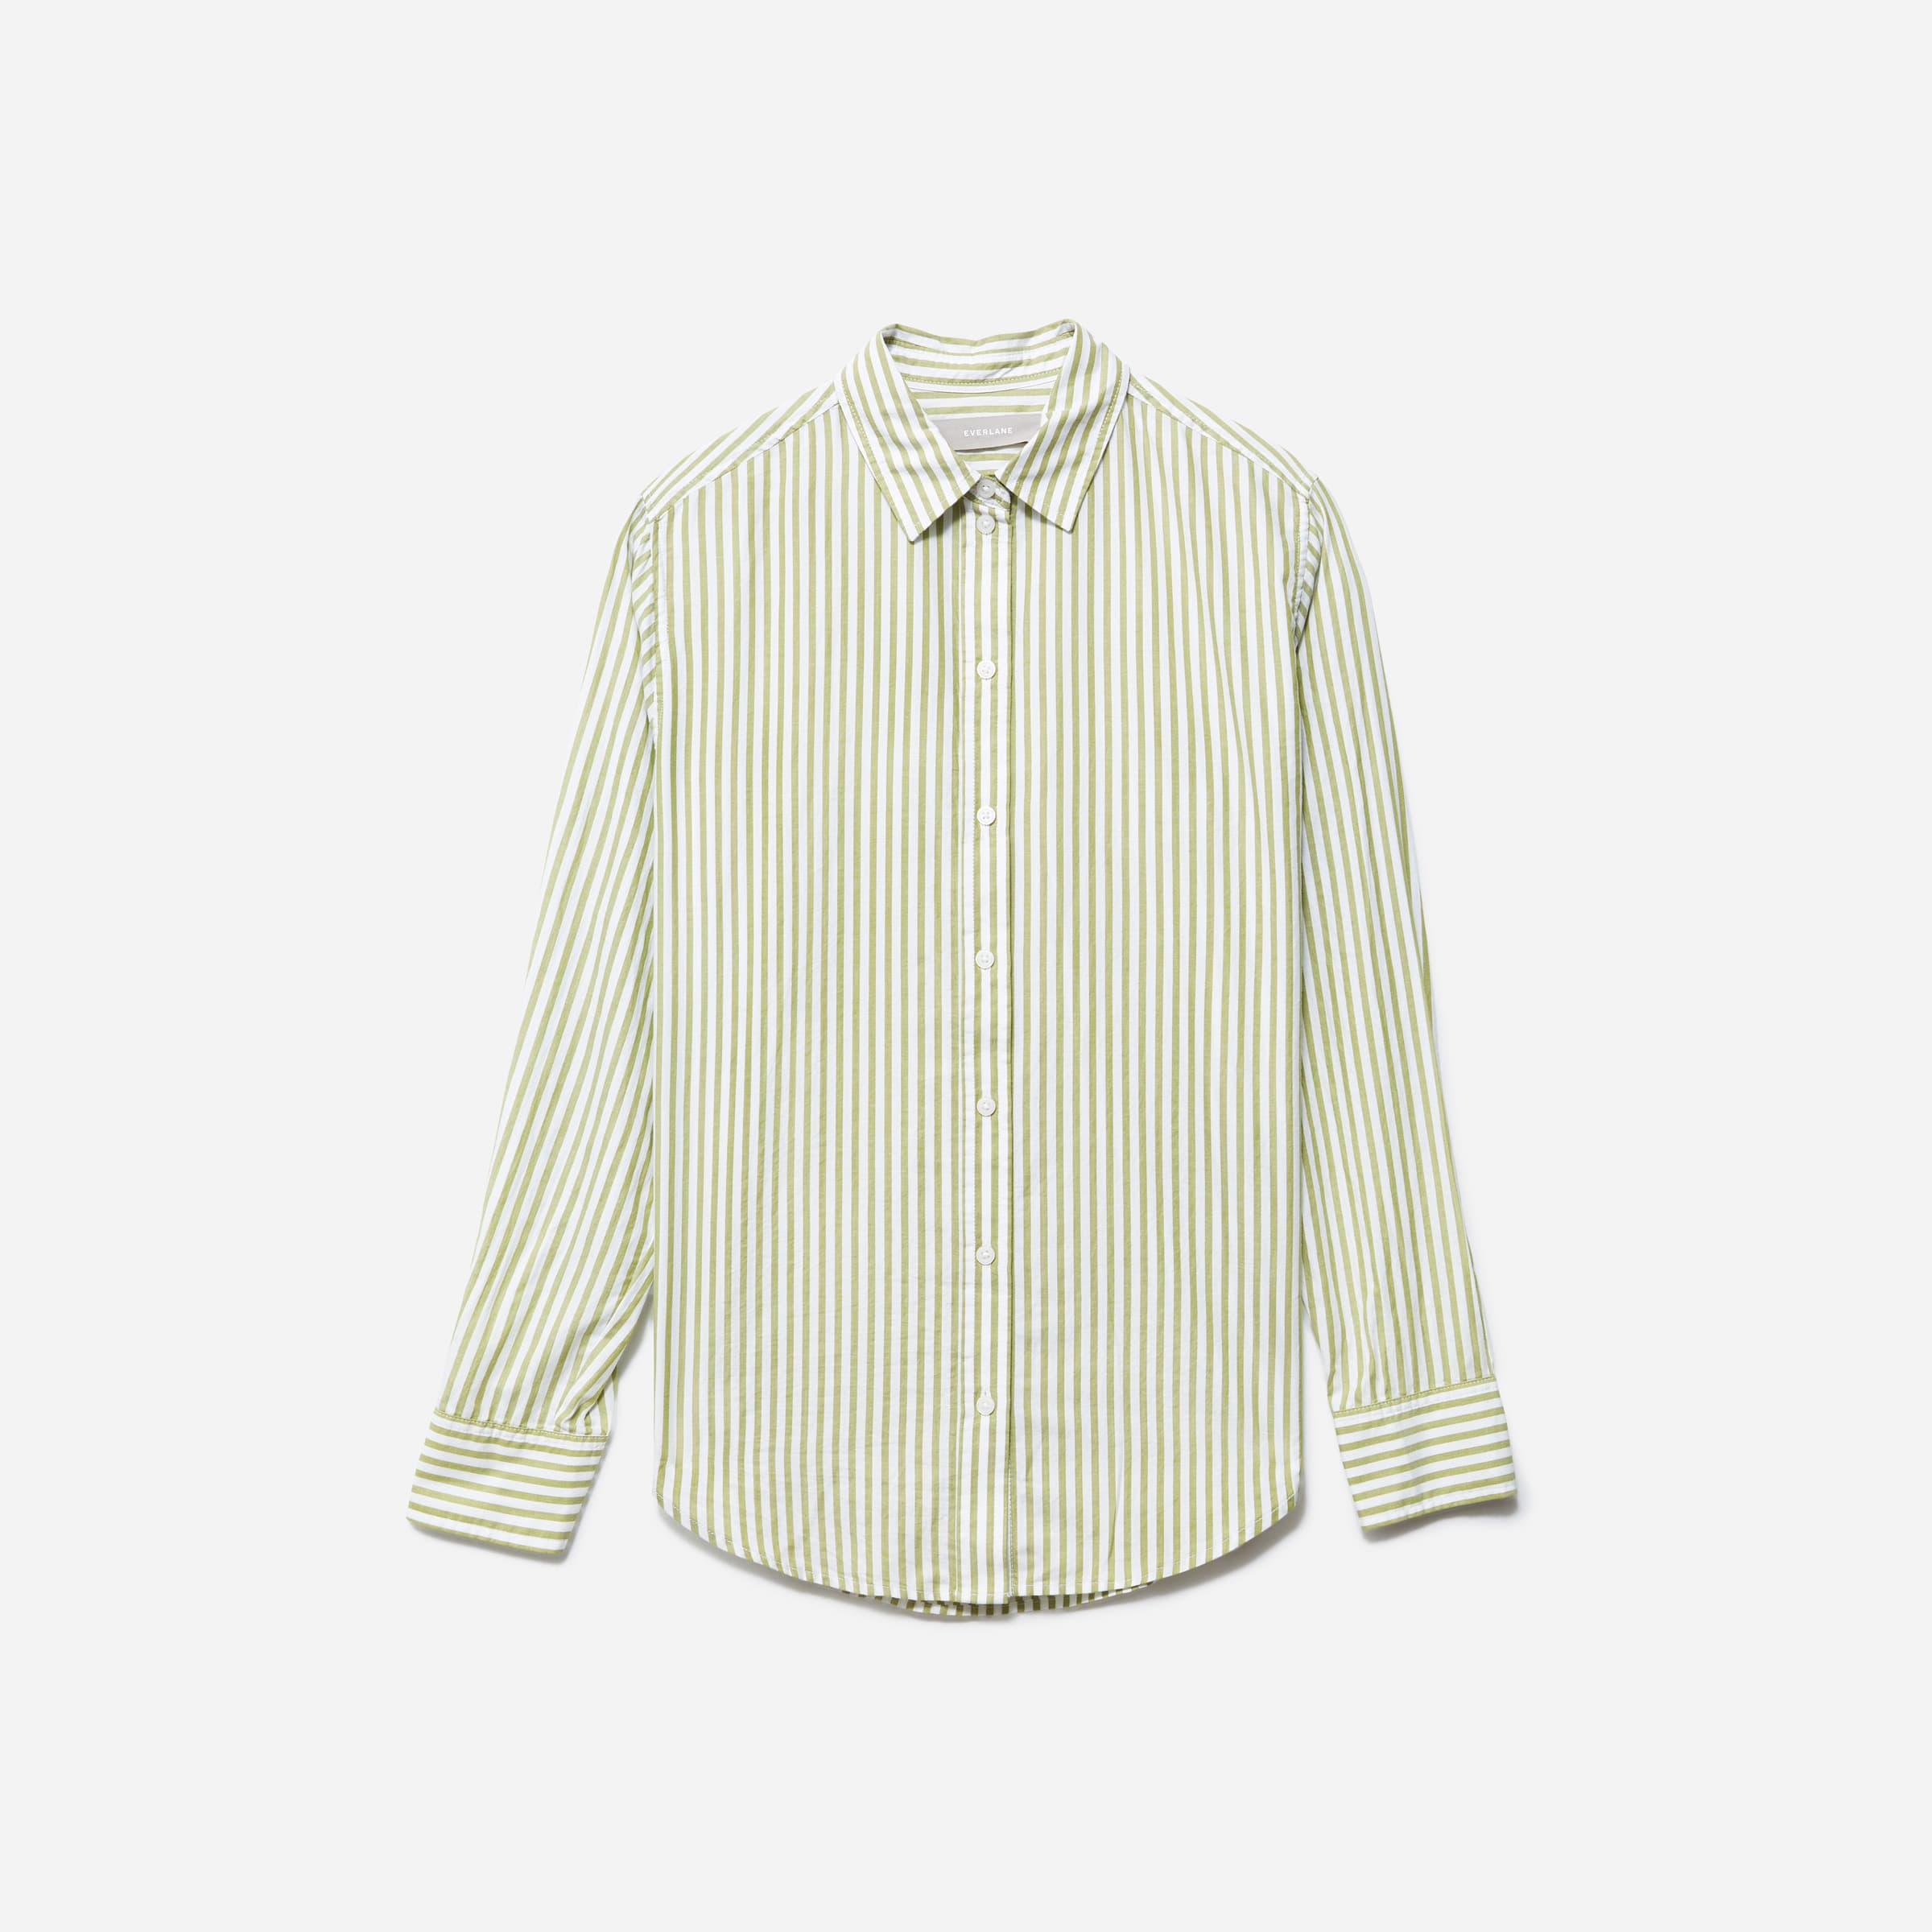 The Silky Cotton Relaxed Shirt 6